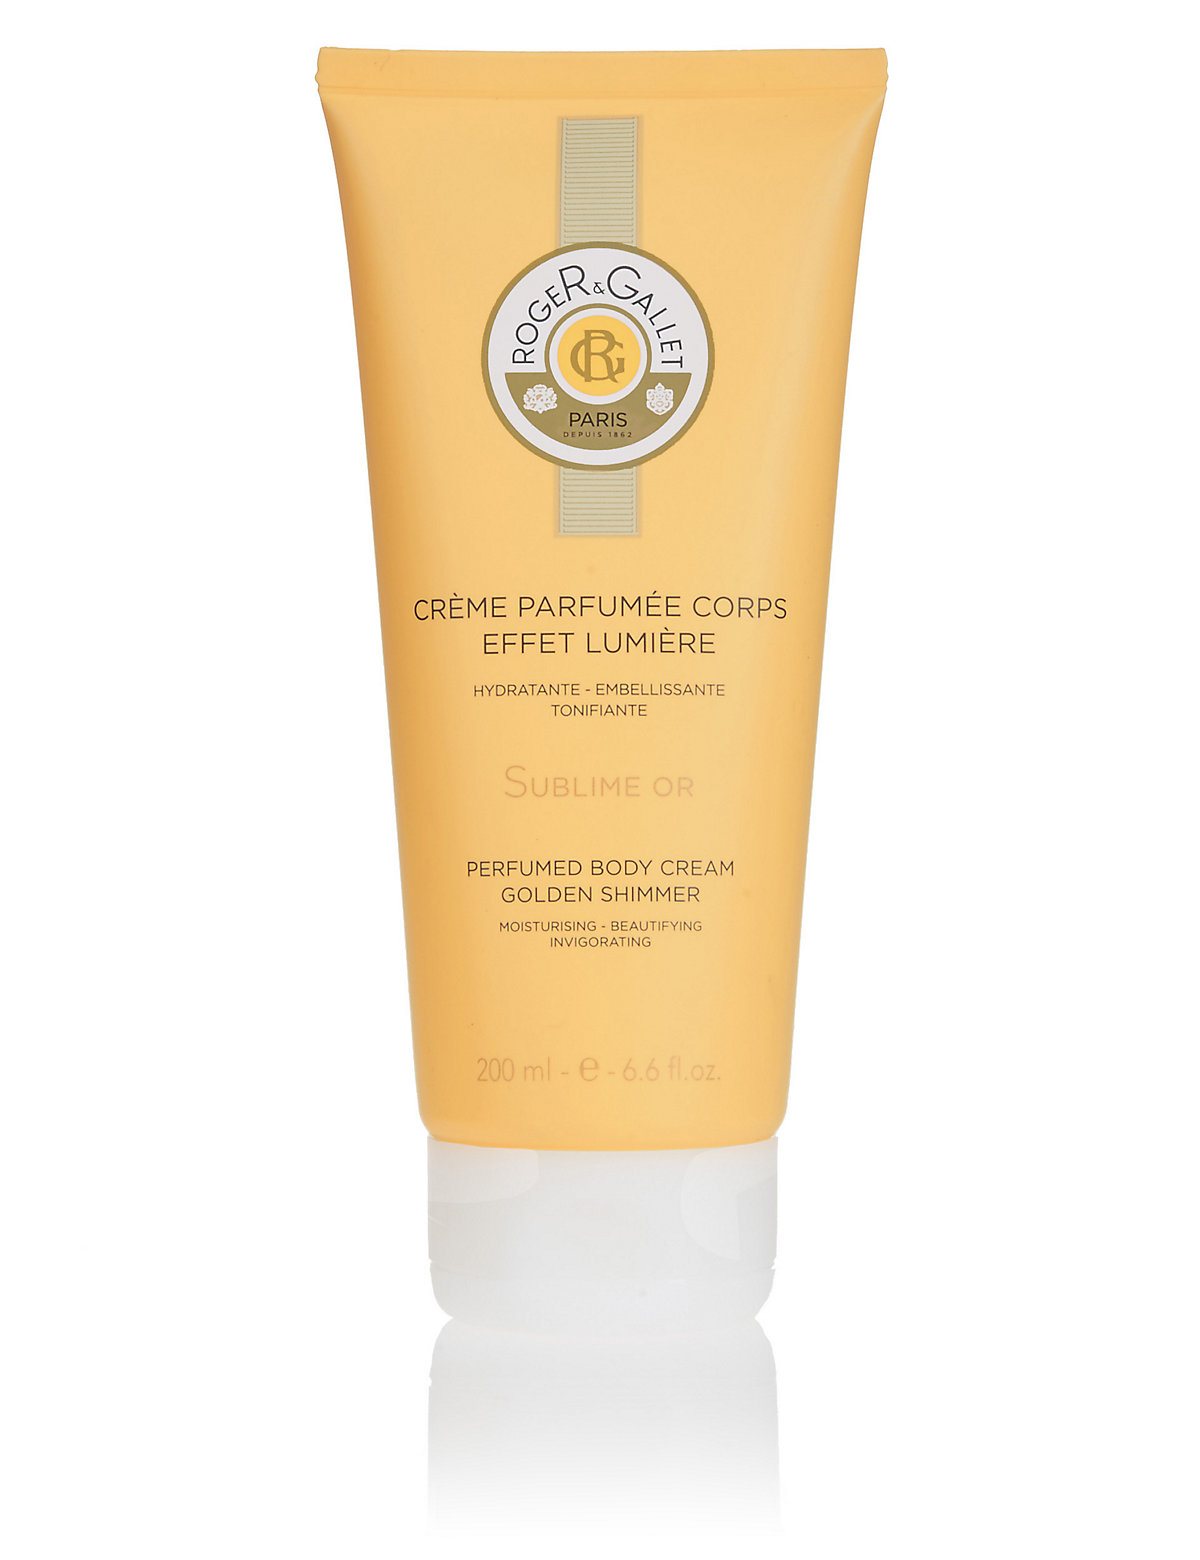 Roger&Gallet Bois D'Orange Gold Shimmer Body Cream 200ml